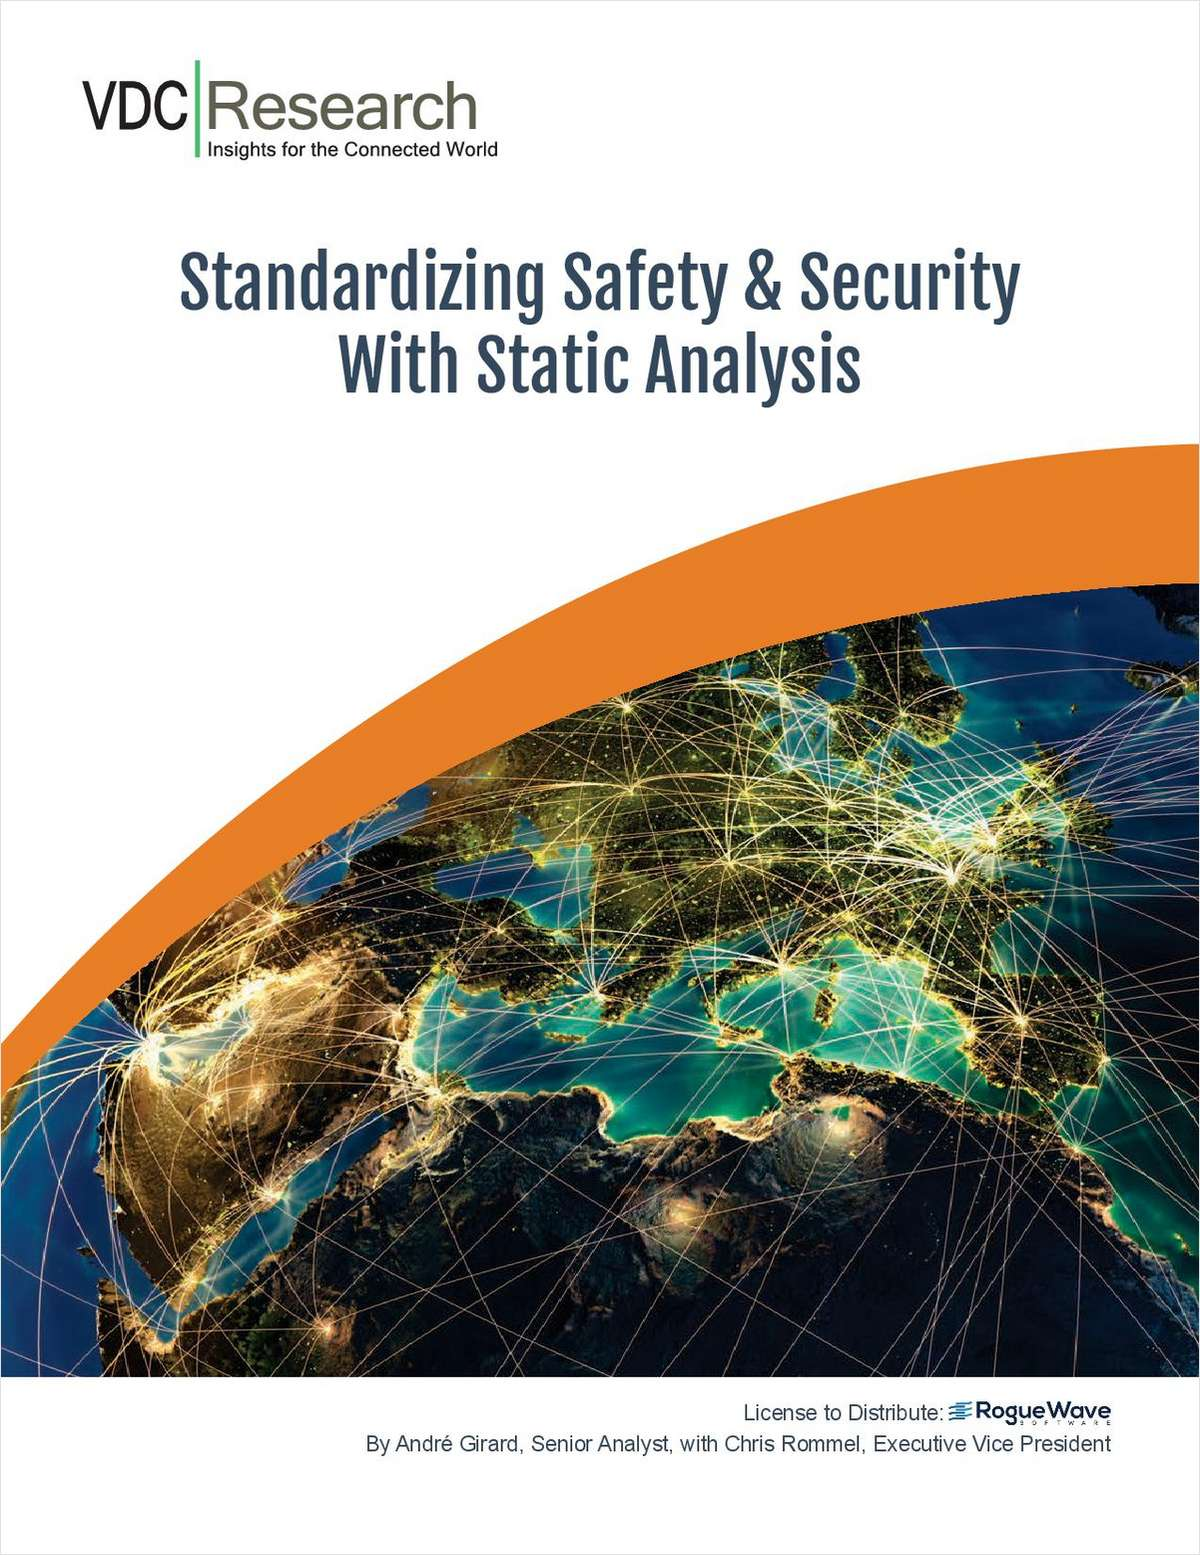 Standardizing Safety and Security with Static Analysis